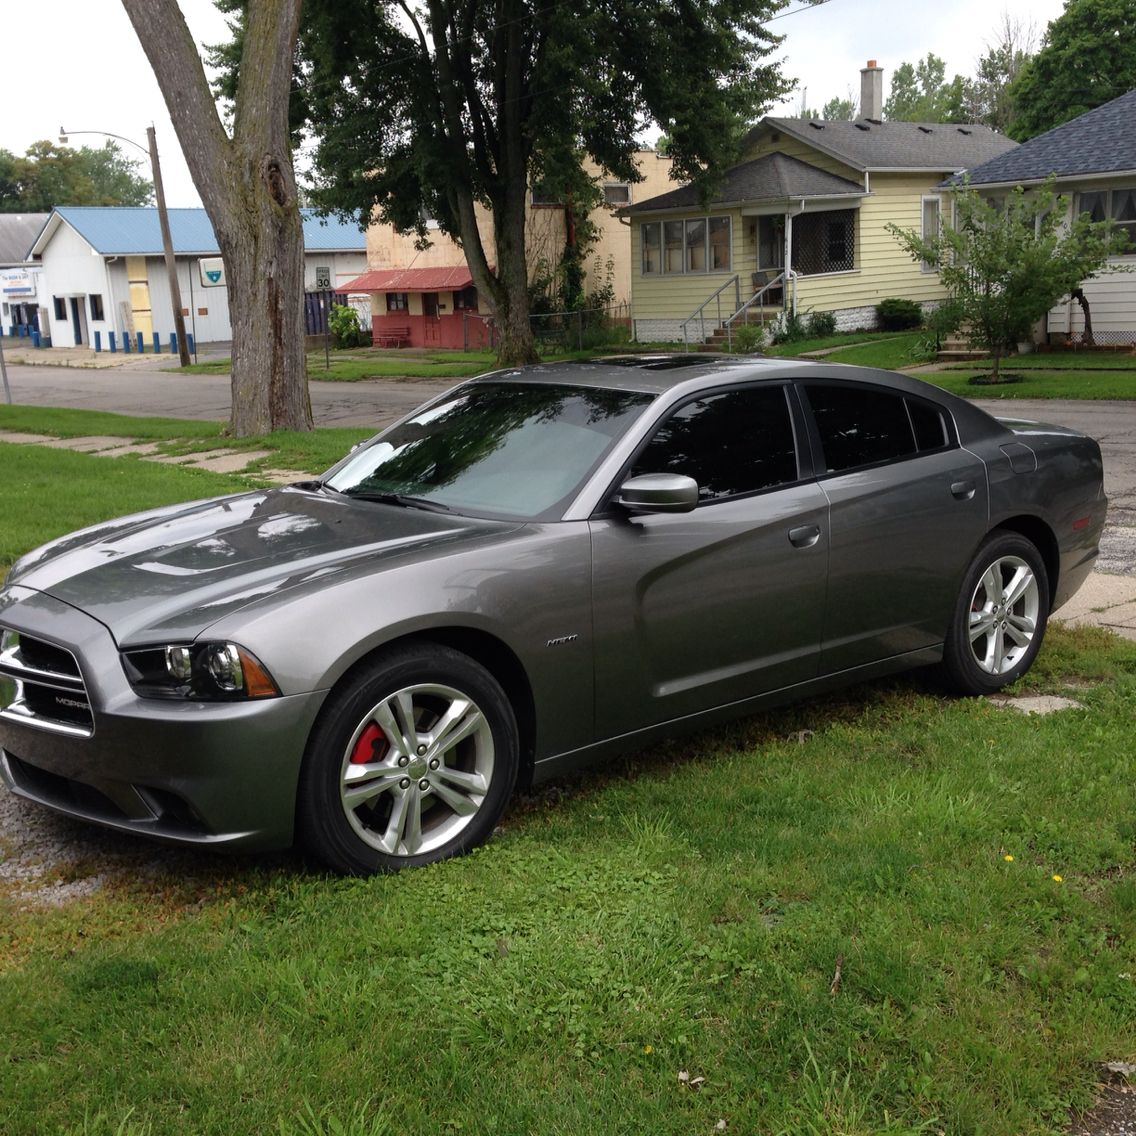 2012 Dodge Charger R/T AWD tinted windows by Dream Makers Fort Wayne, IN